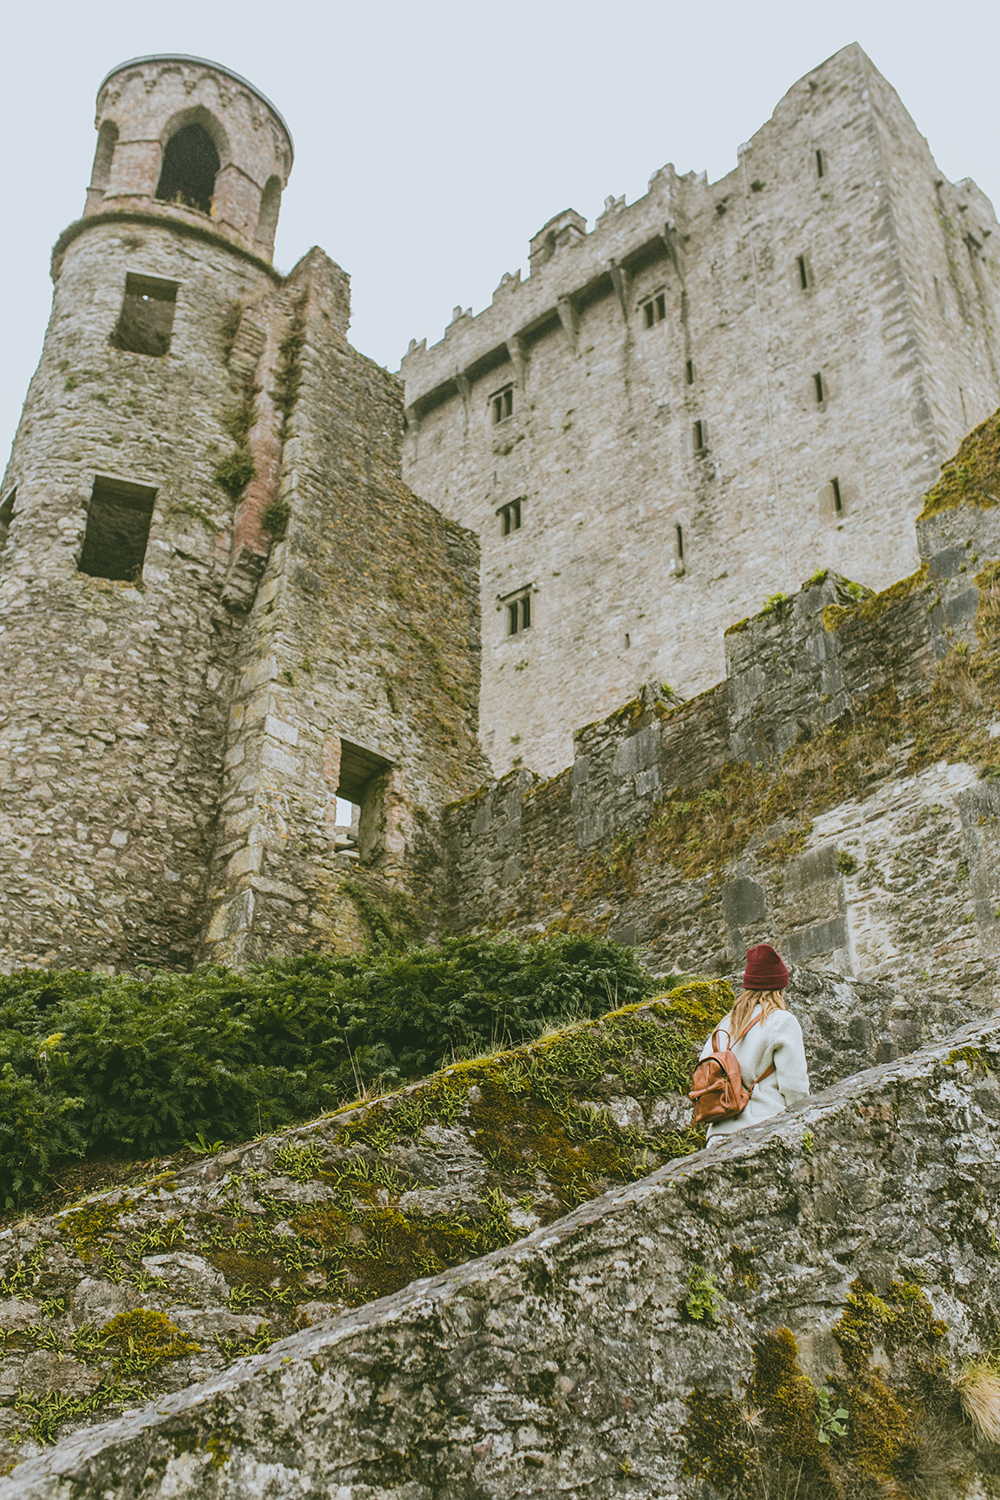 livvyland-blog-olivia-watson-austin-texas-travel-lifestyle-blogger-what-do-see-ireland-cork-blarney-castle-1